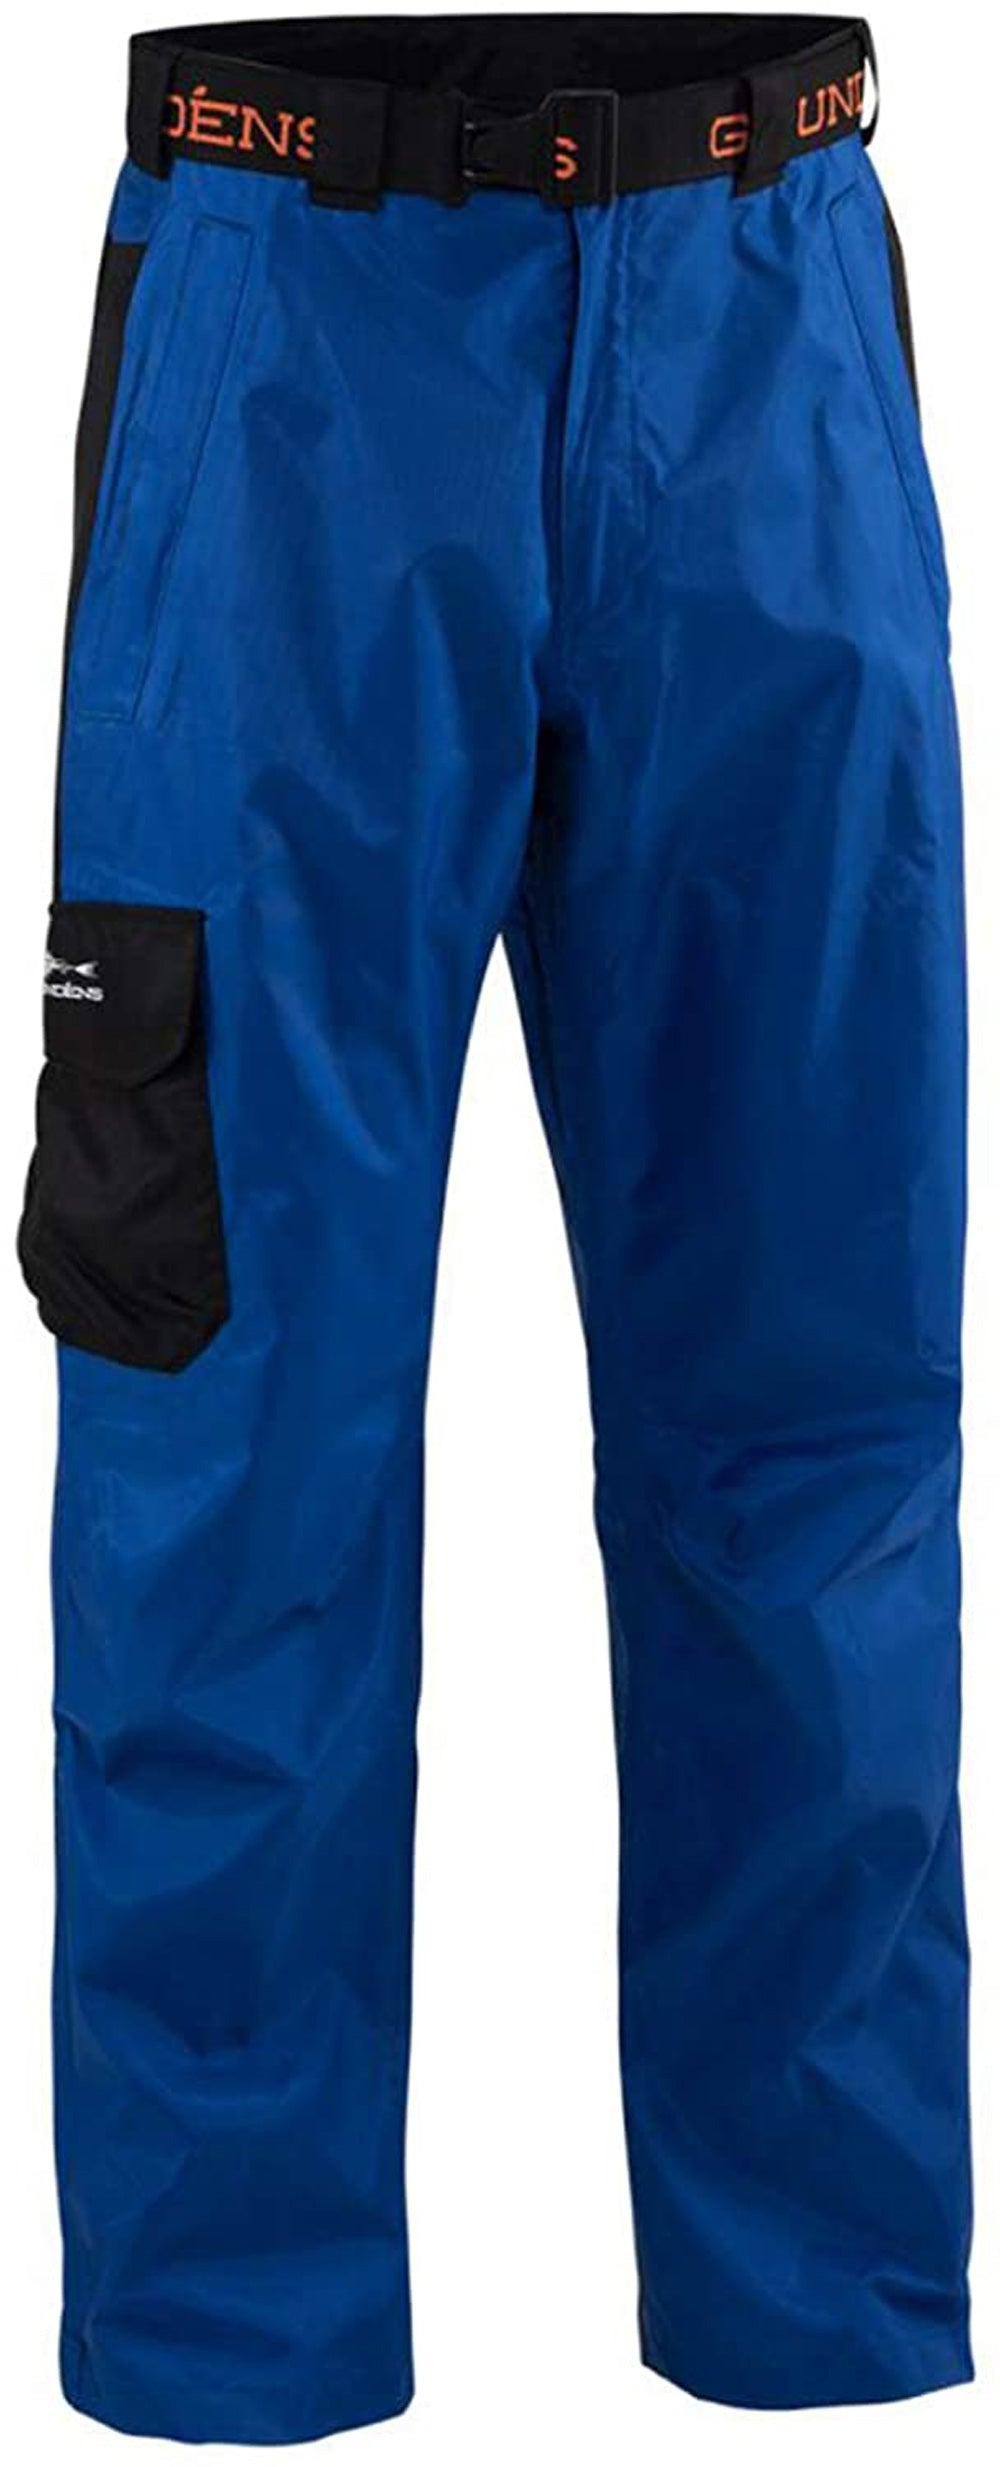 Weather Watch Pant in Glacier Blue color from the front view